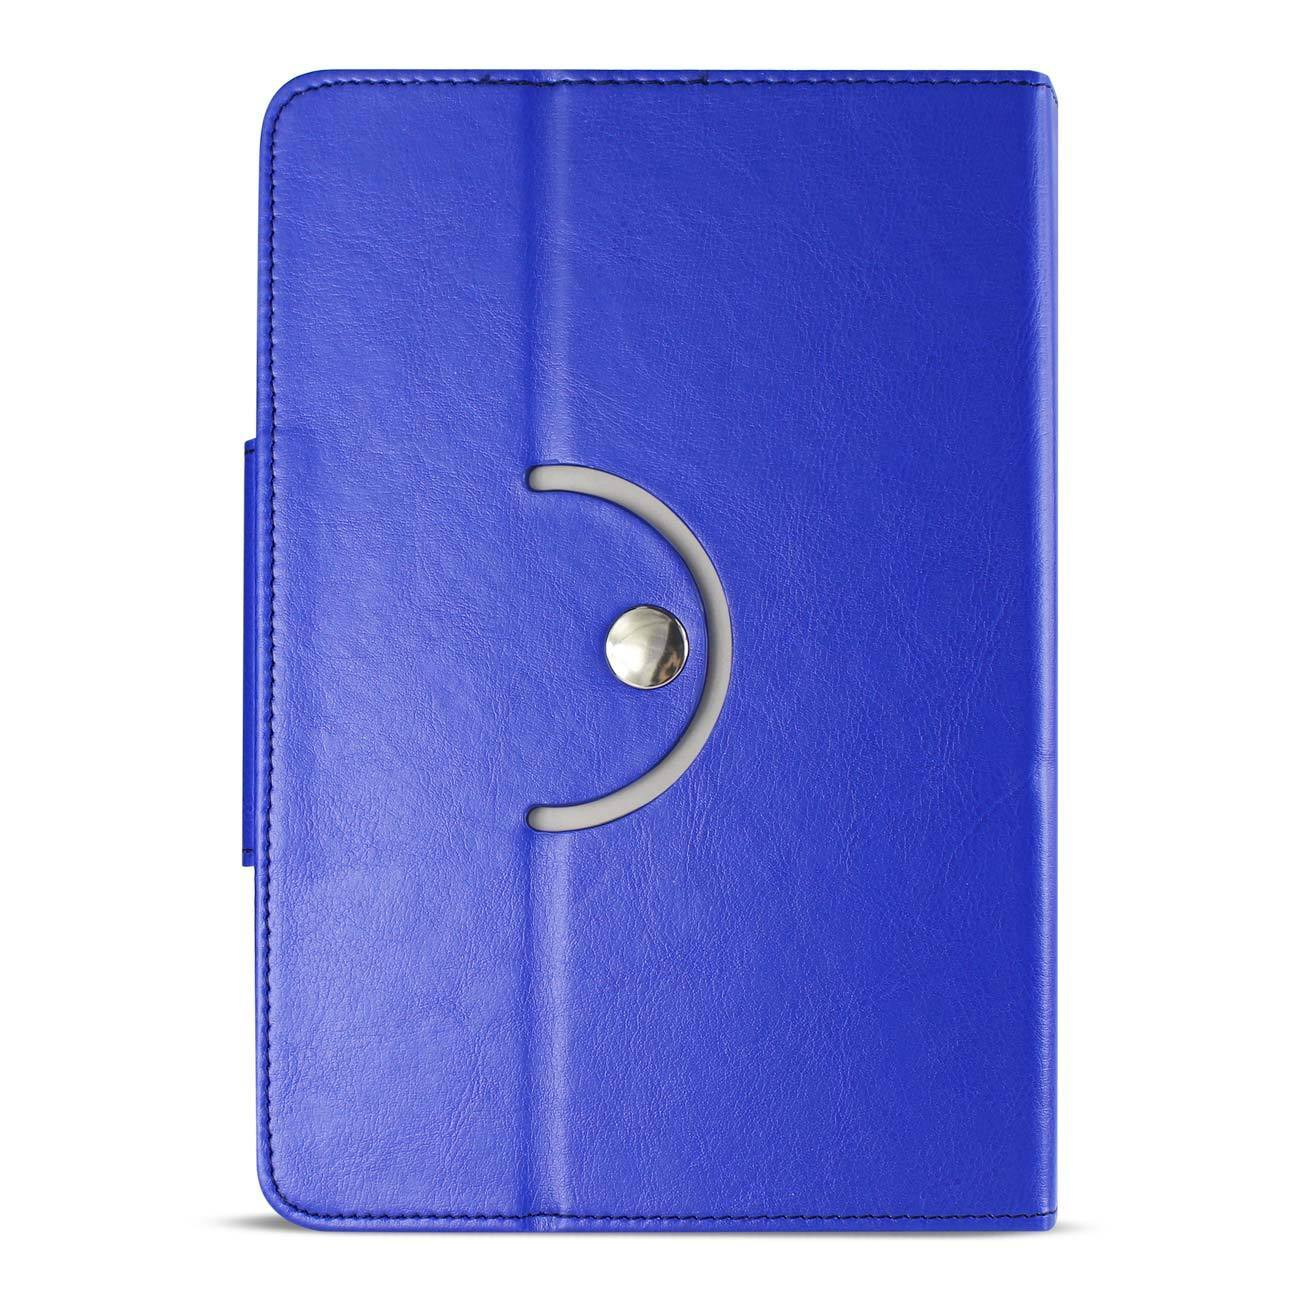 Reiko Universal Ultra Slim Leather Flip Case Cover For 8 Inch iPad Mini Or Android Tablet Pc In Blue